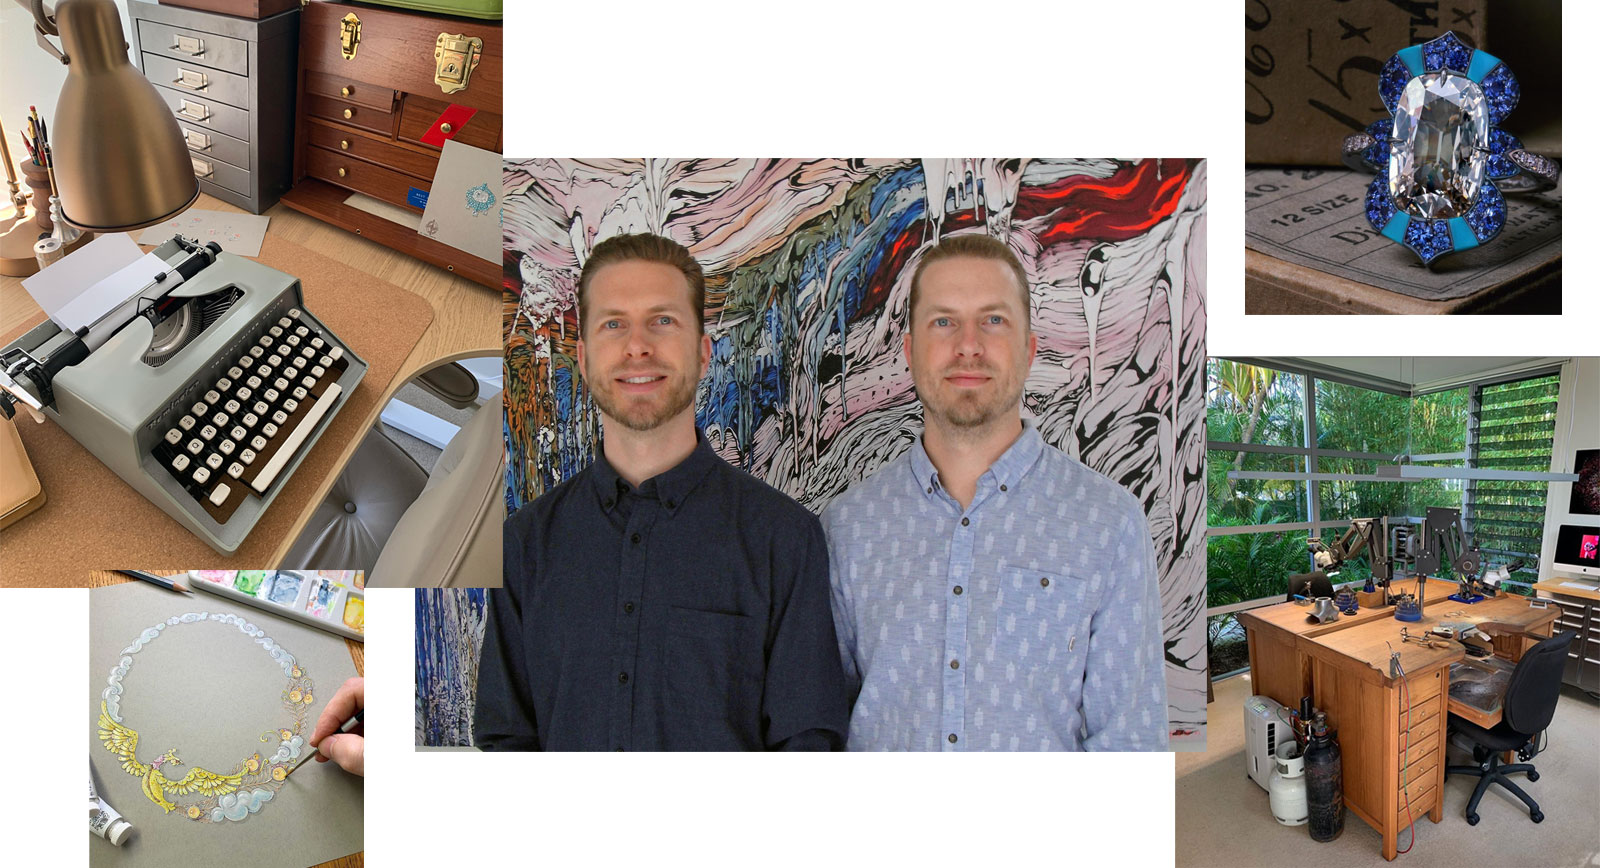 David and Michael from David Michael Jewels pictured beside their workshop/studio